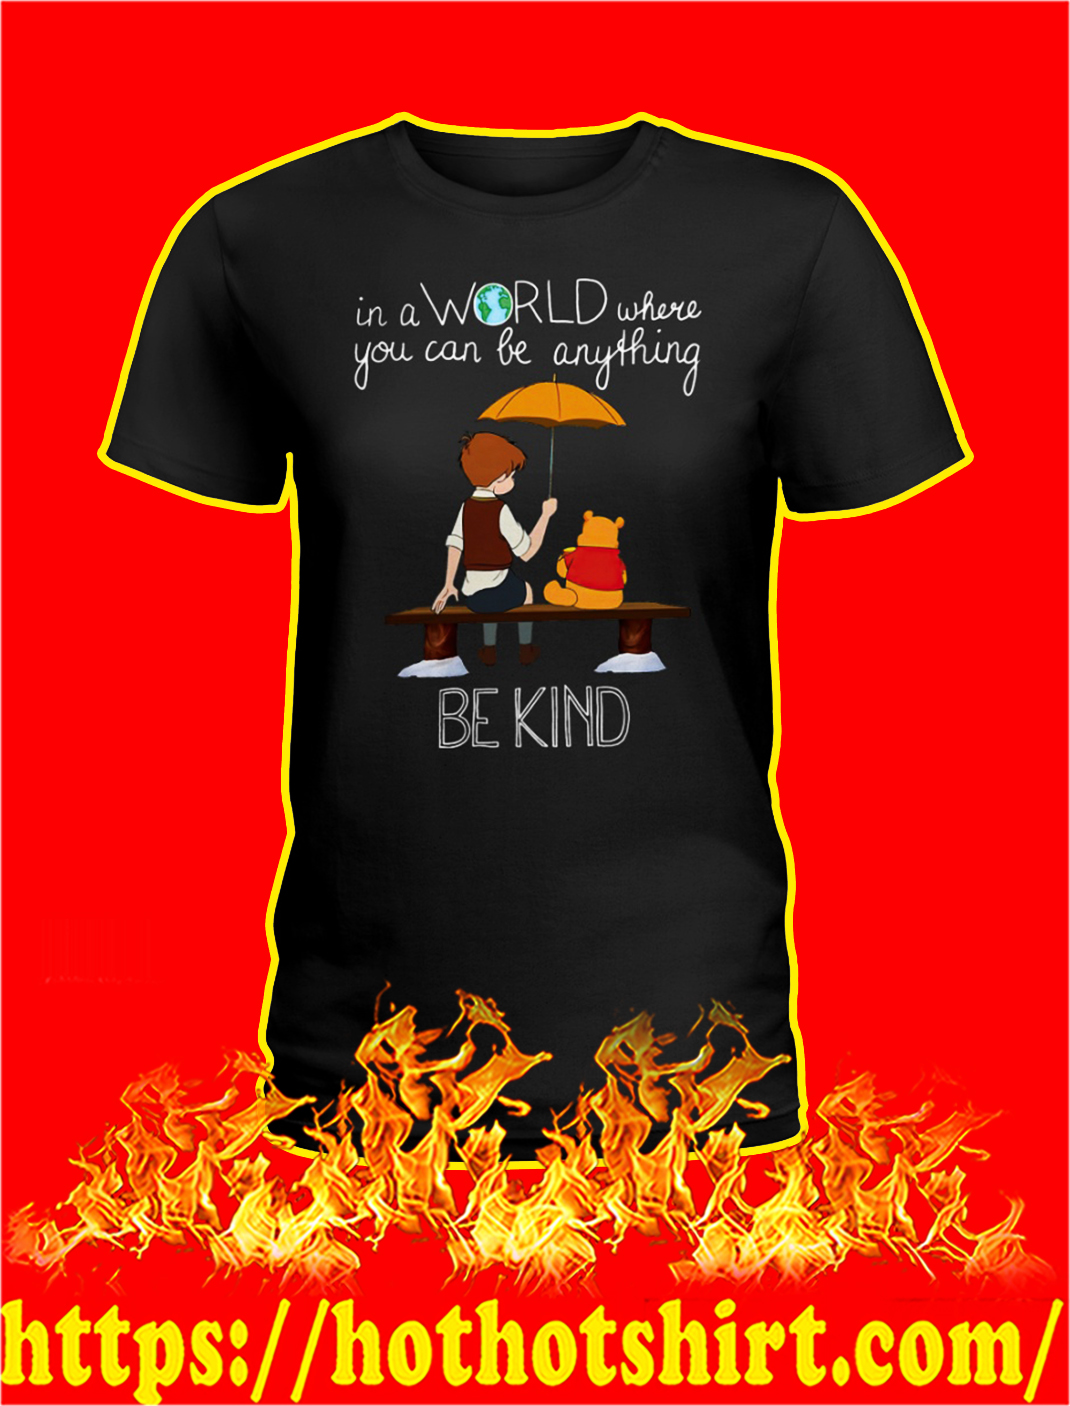 Pooh In a world where you can be anything be kind lady shirt